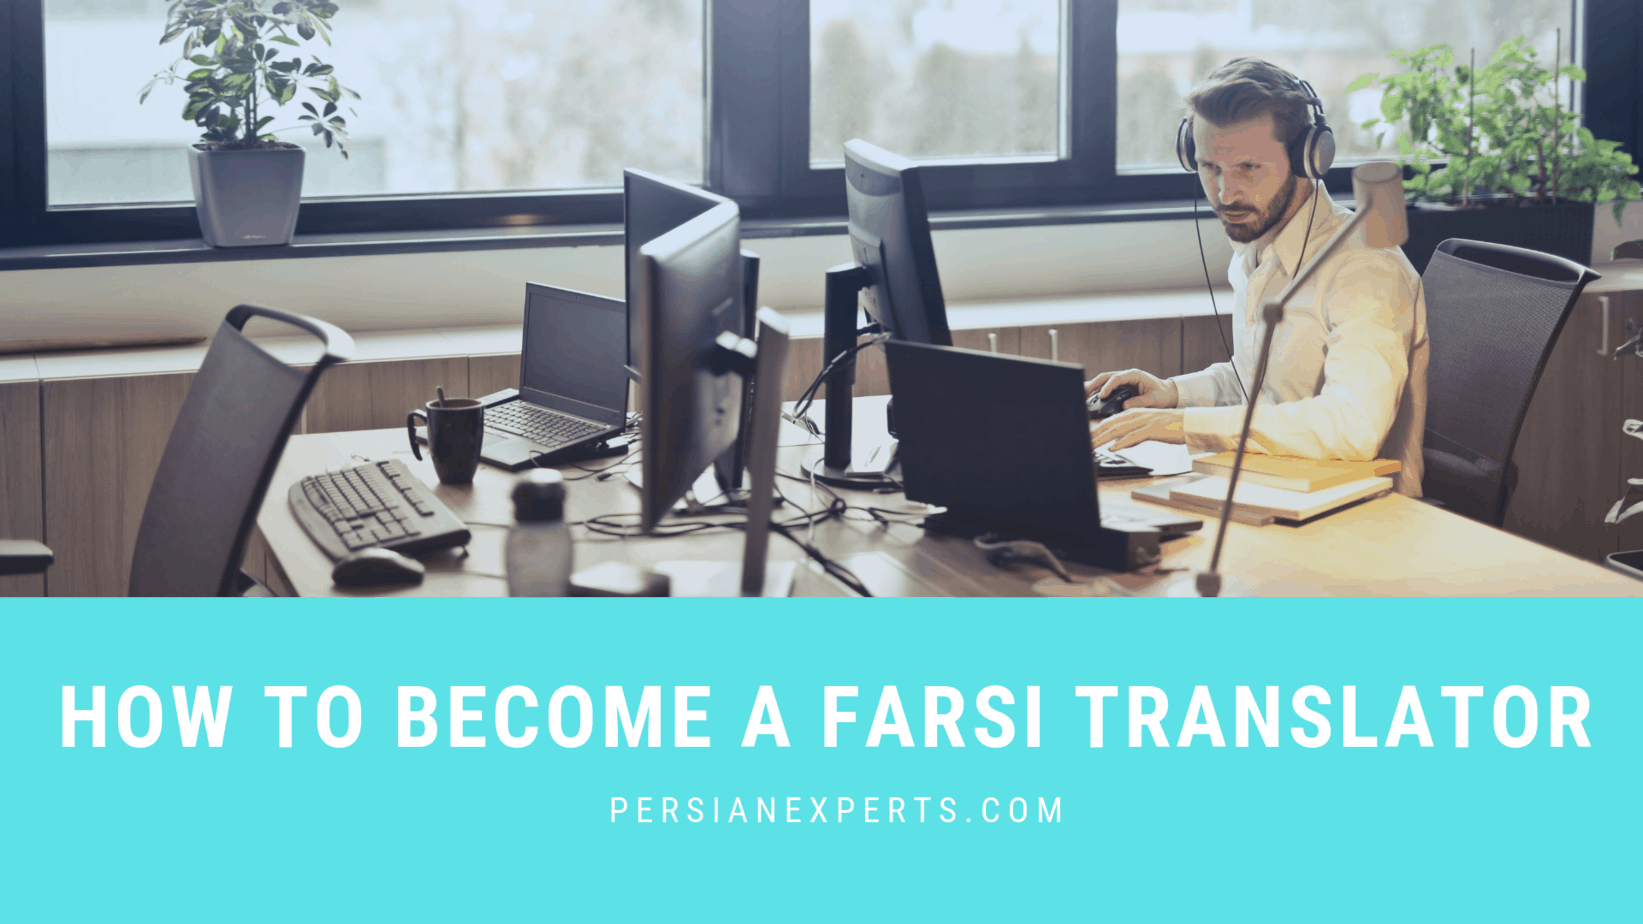 How to Become a Farsi Translator